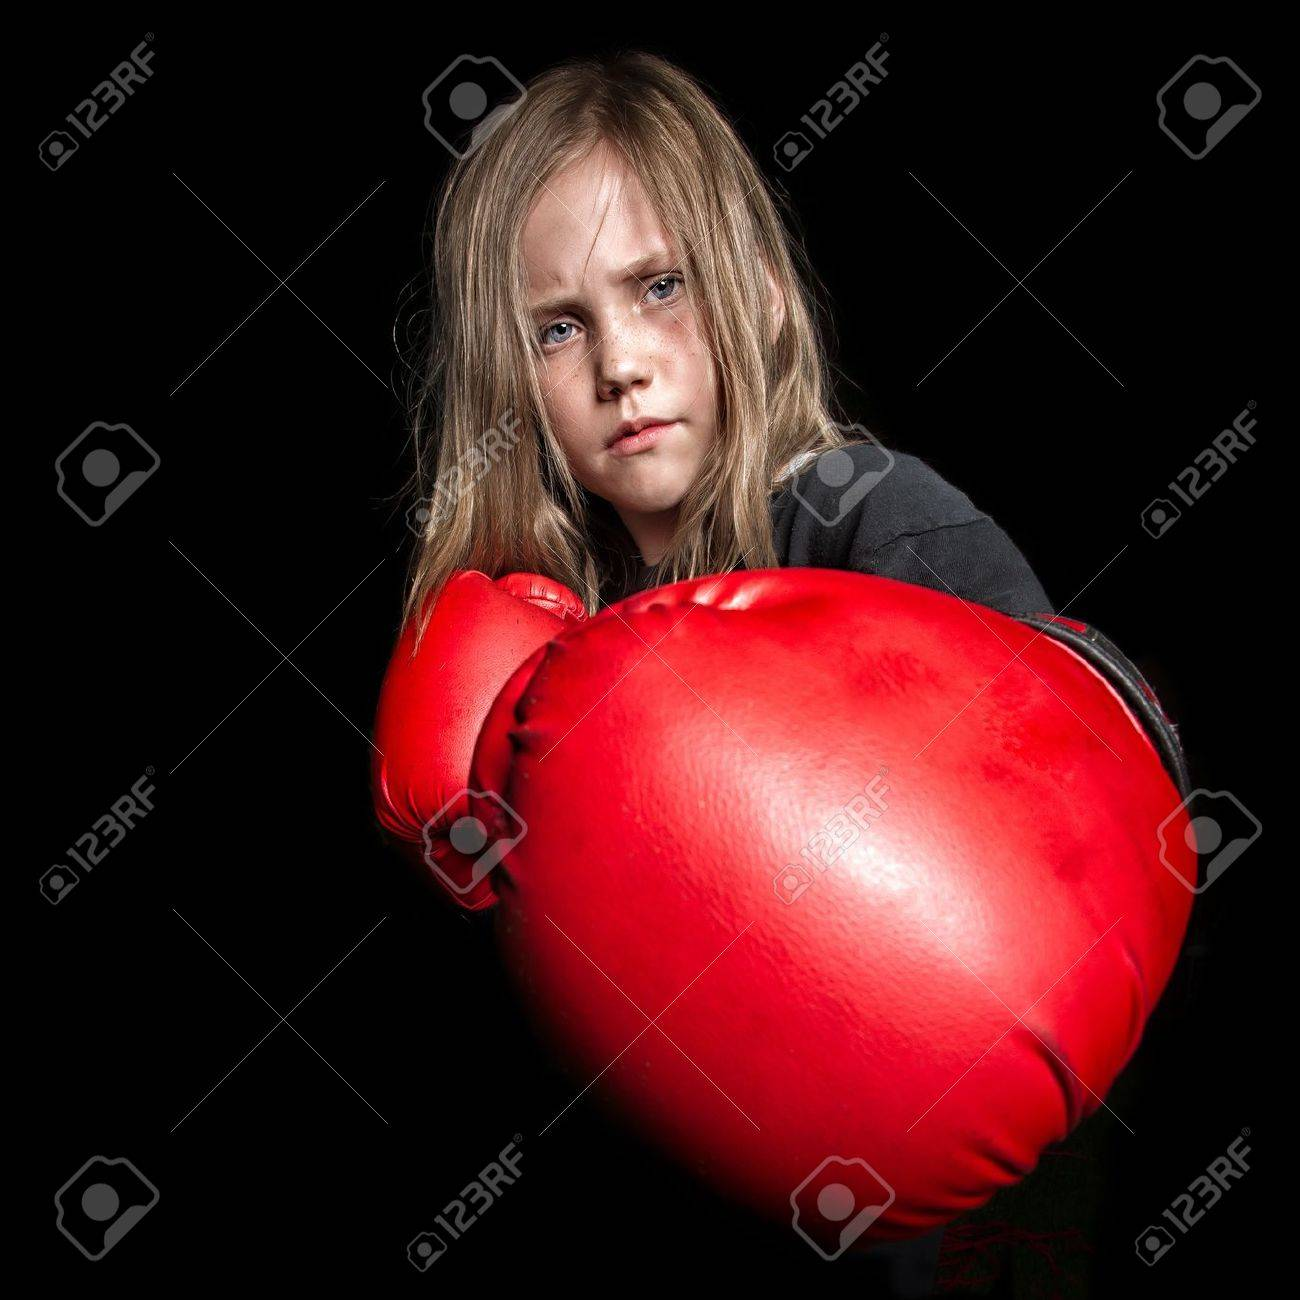 A young female child looks mean as she gets ready to throw a punch at the camera wearing boxing gloves - 21284958